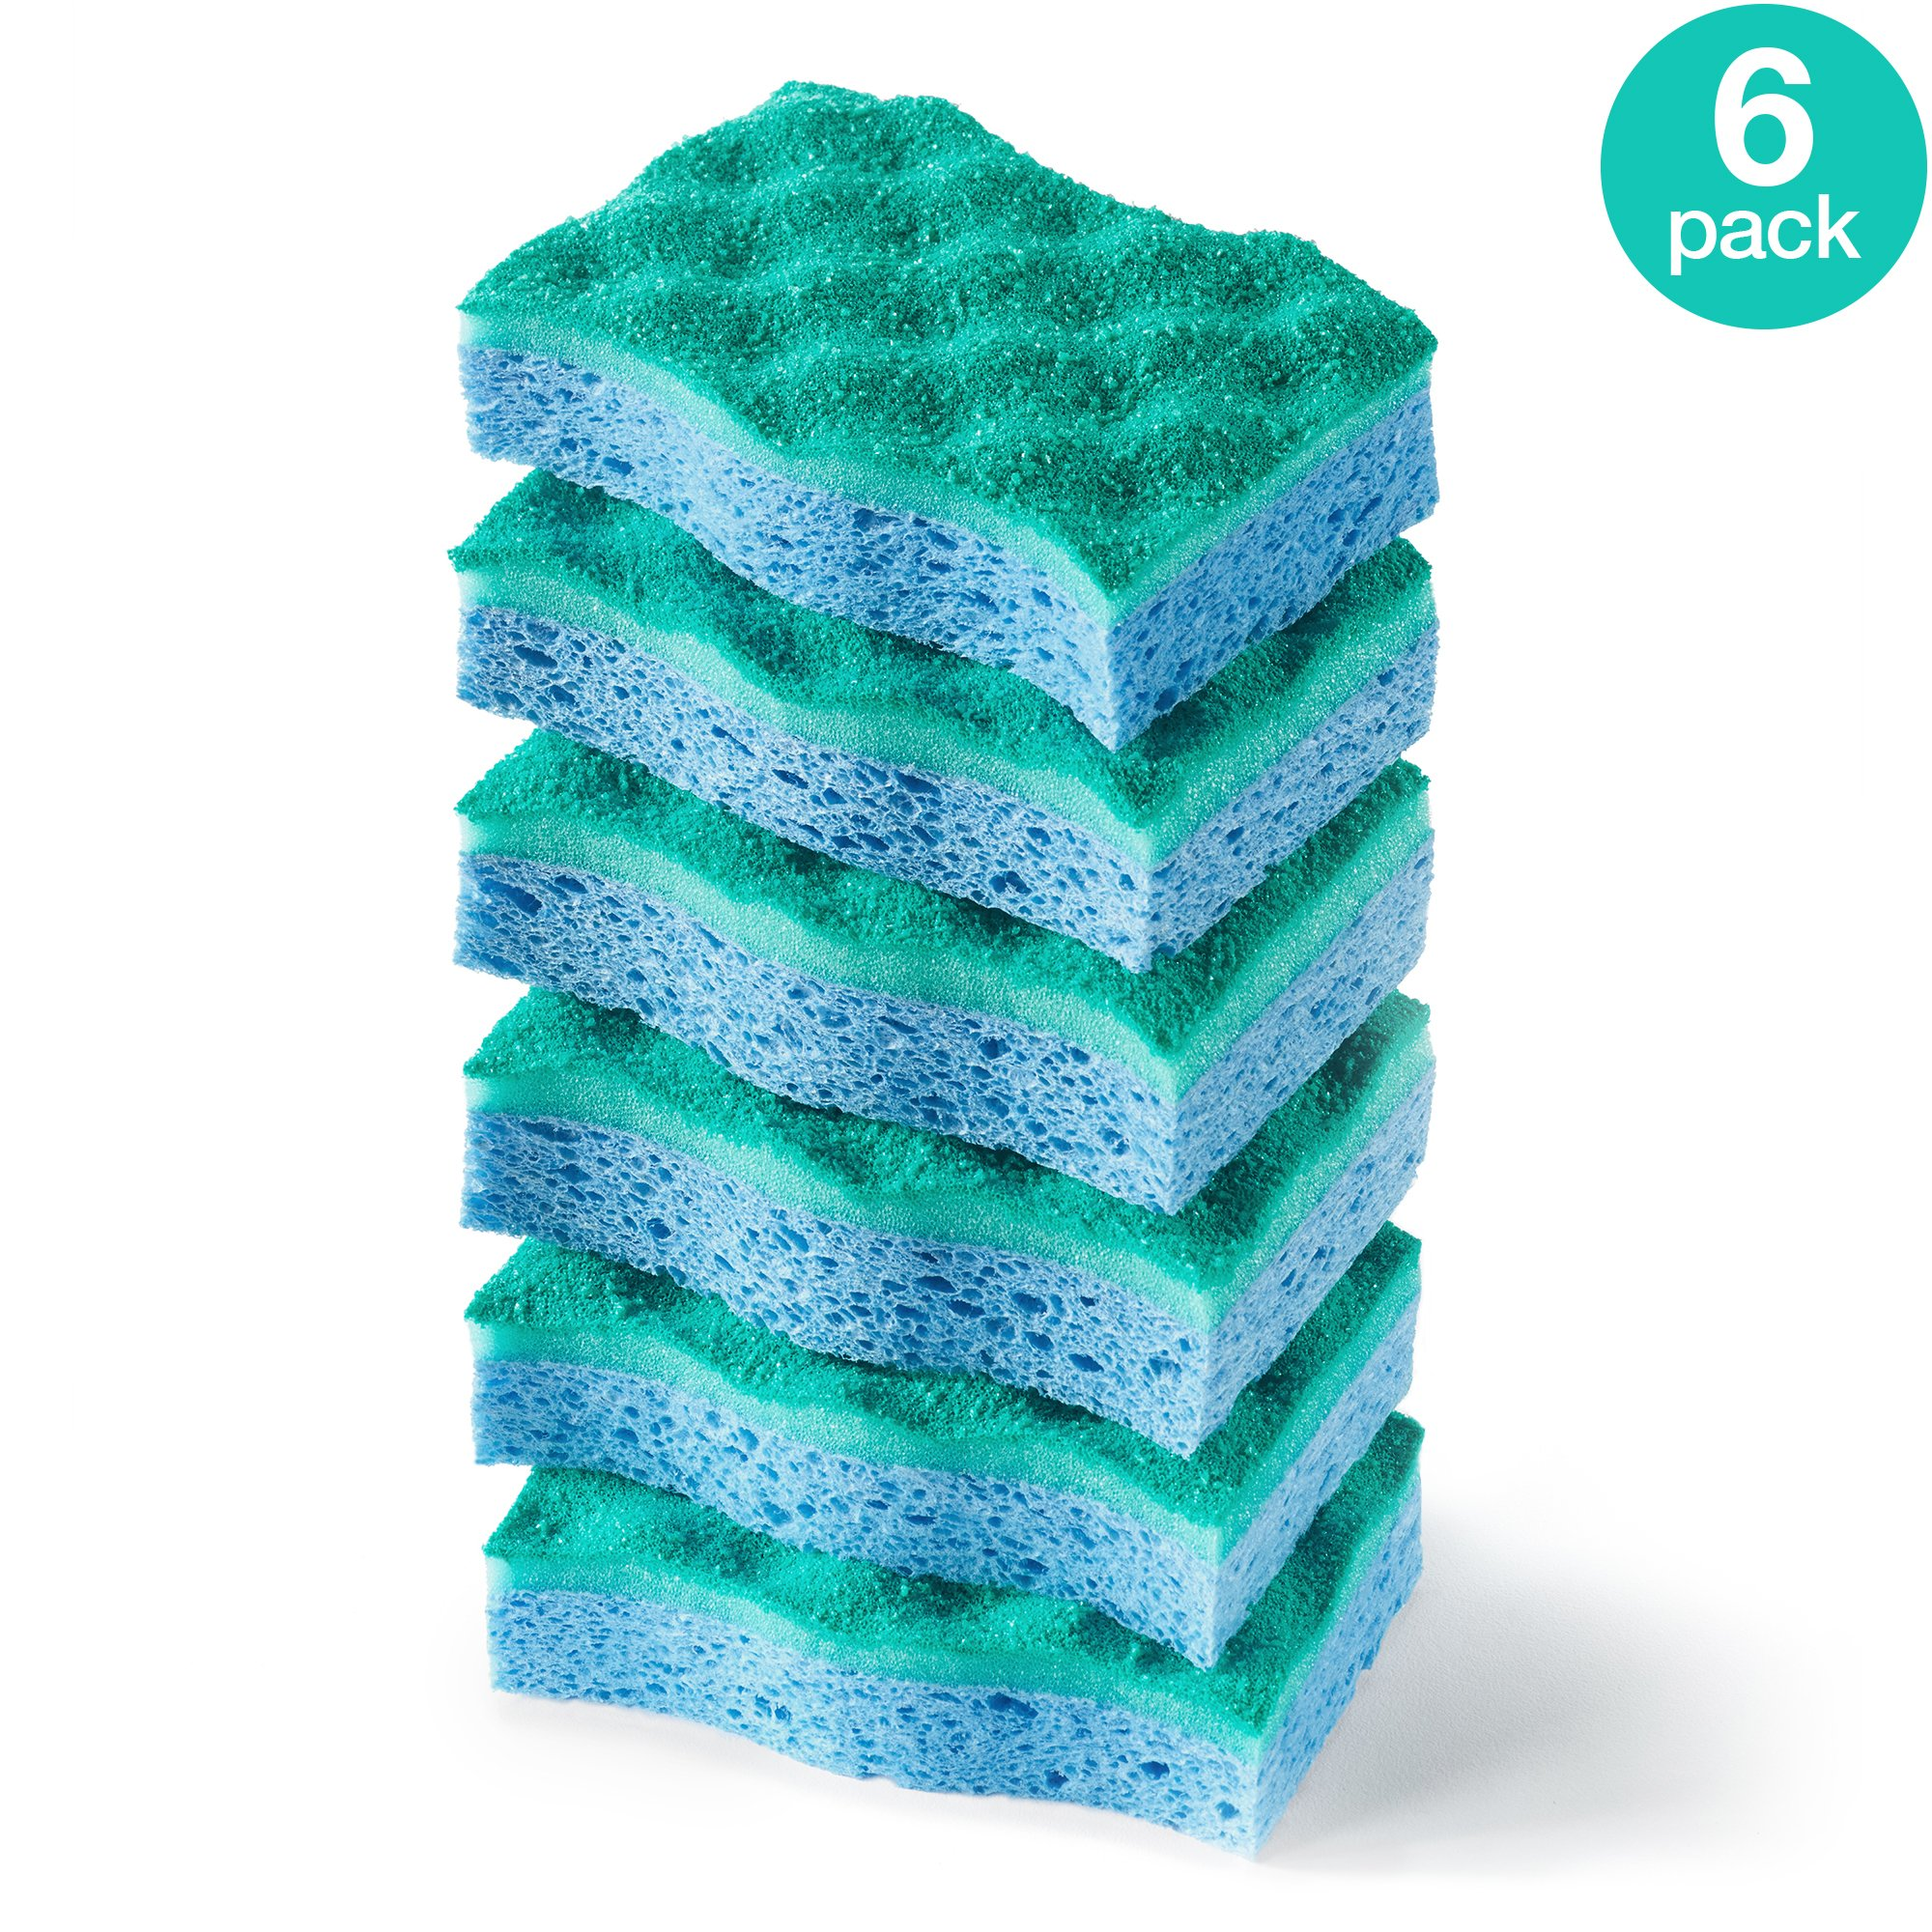 O-Cedar Multi-Use Scrunge Scrub Sponge (Pack of 6) product image